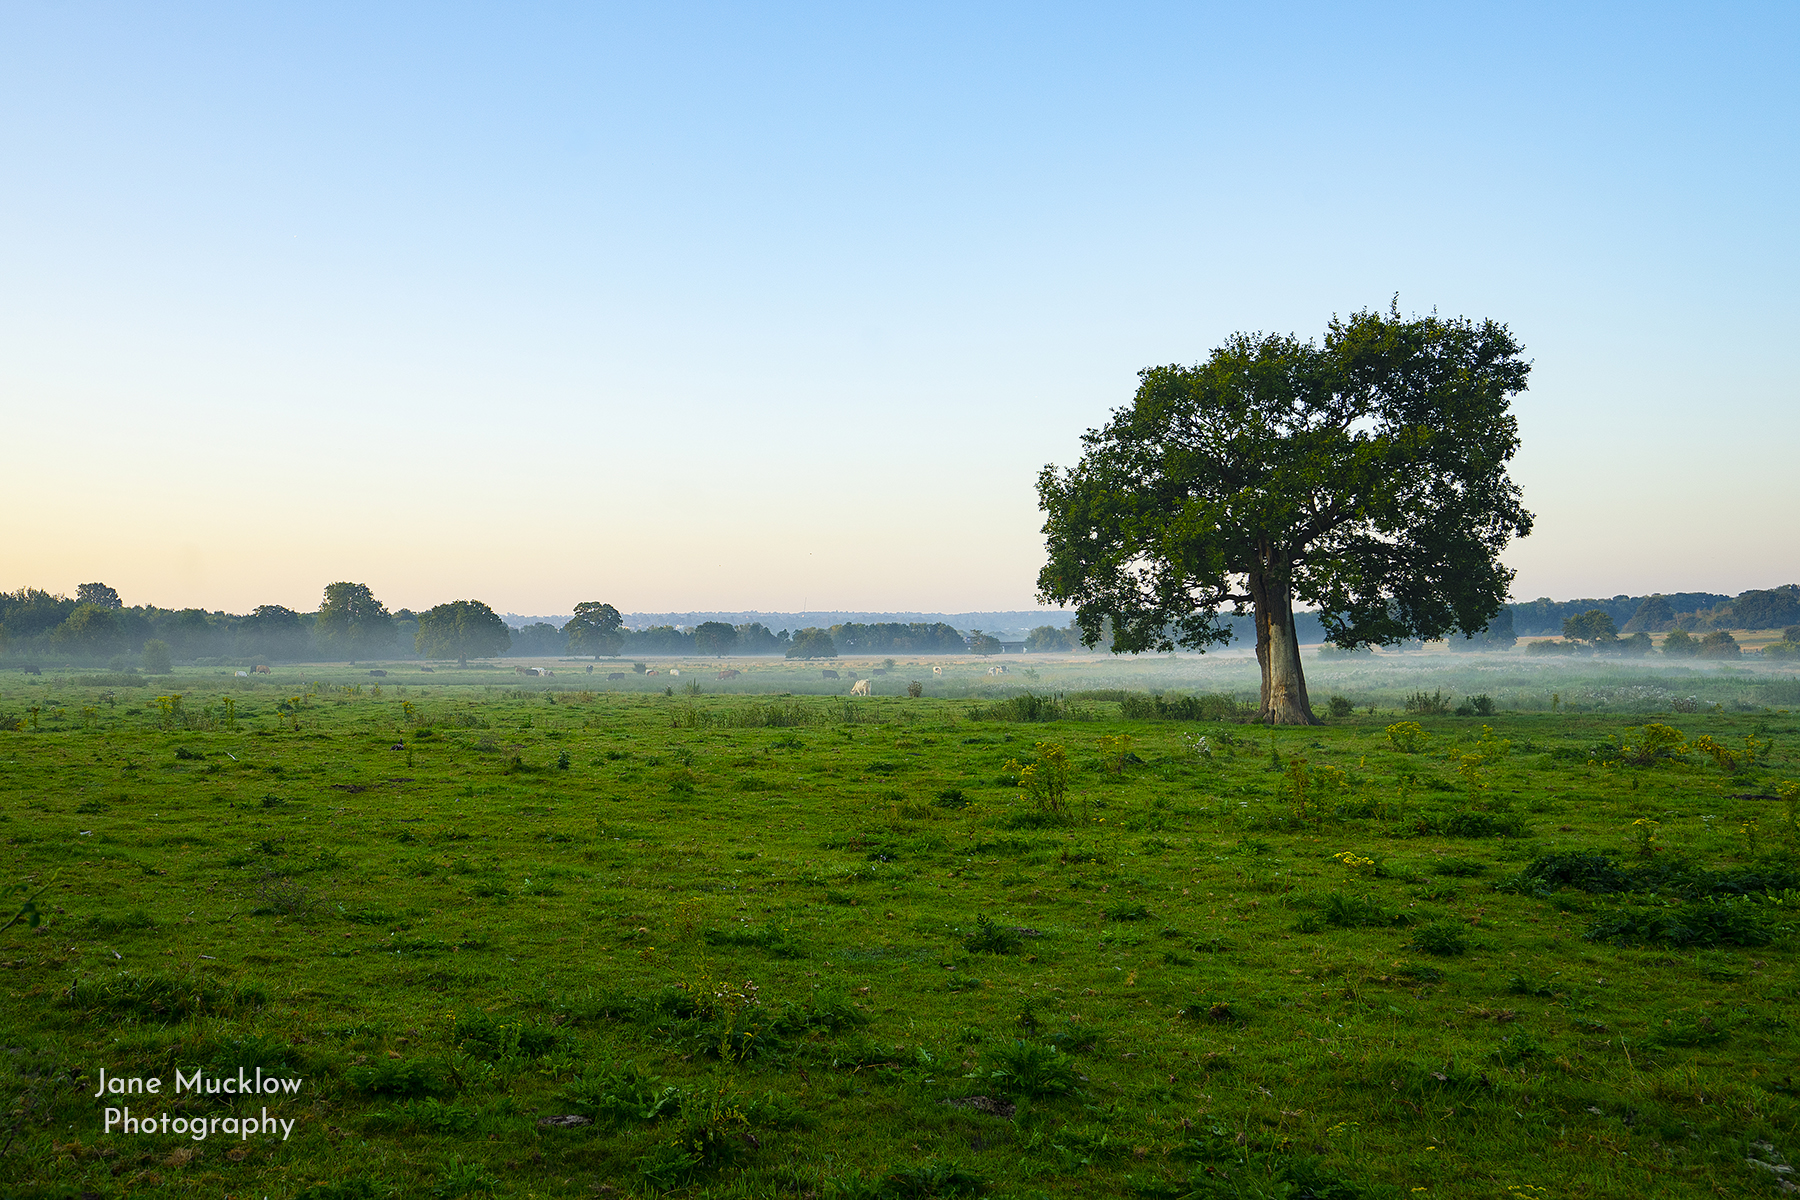 Photograph by Jane Mucklow of the Lone Tree with a misty sunrise